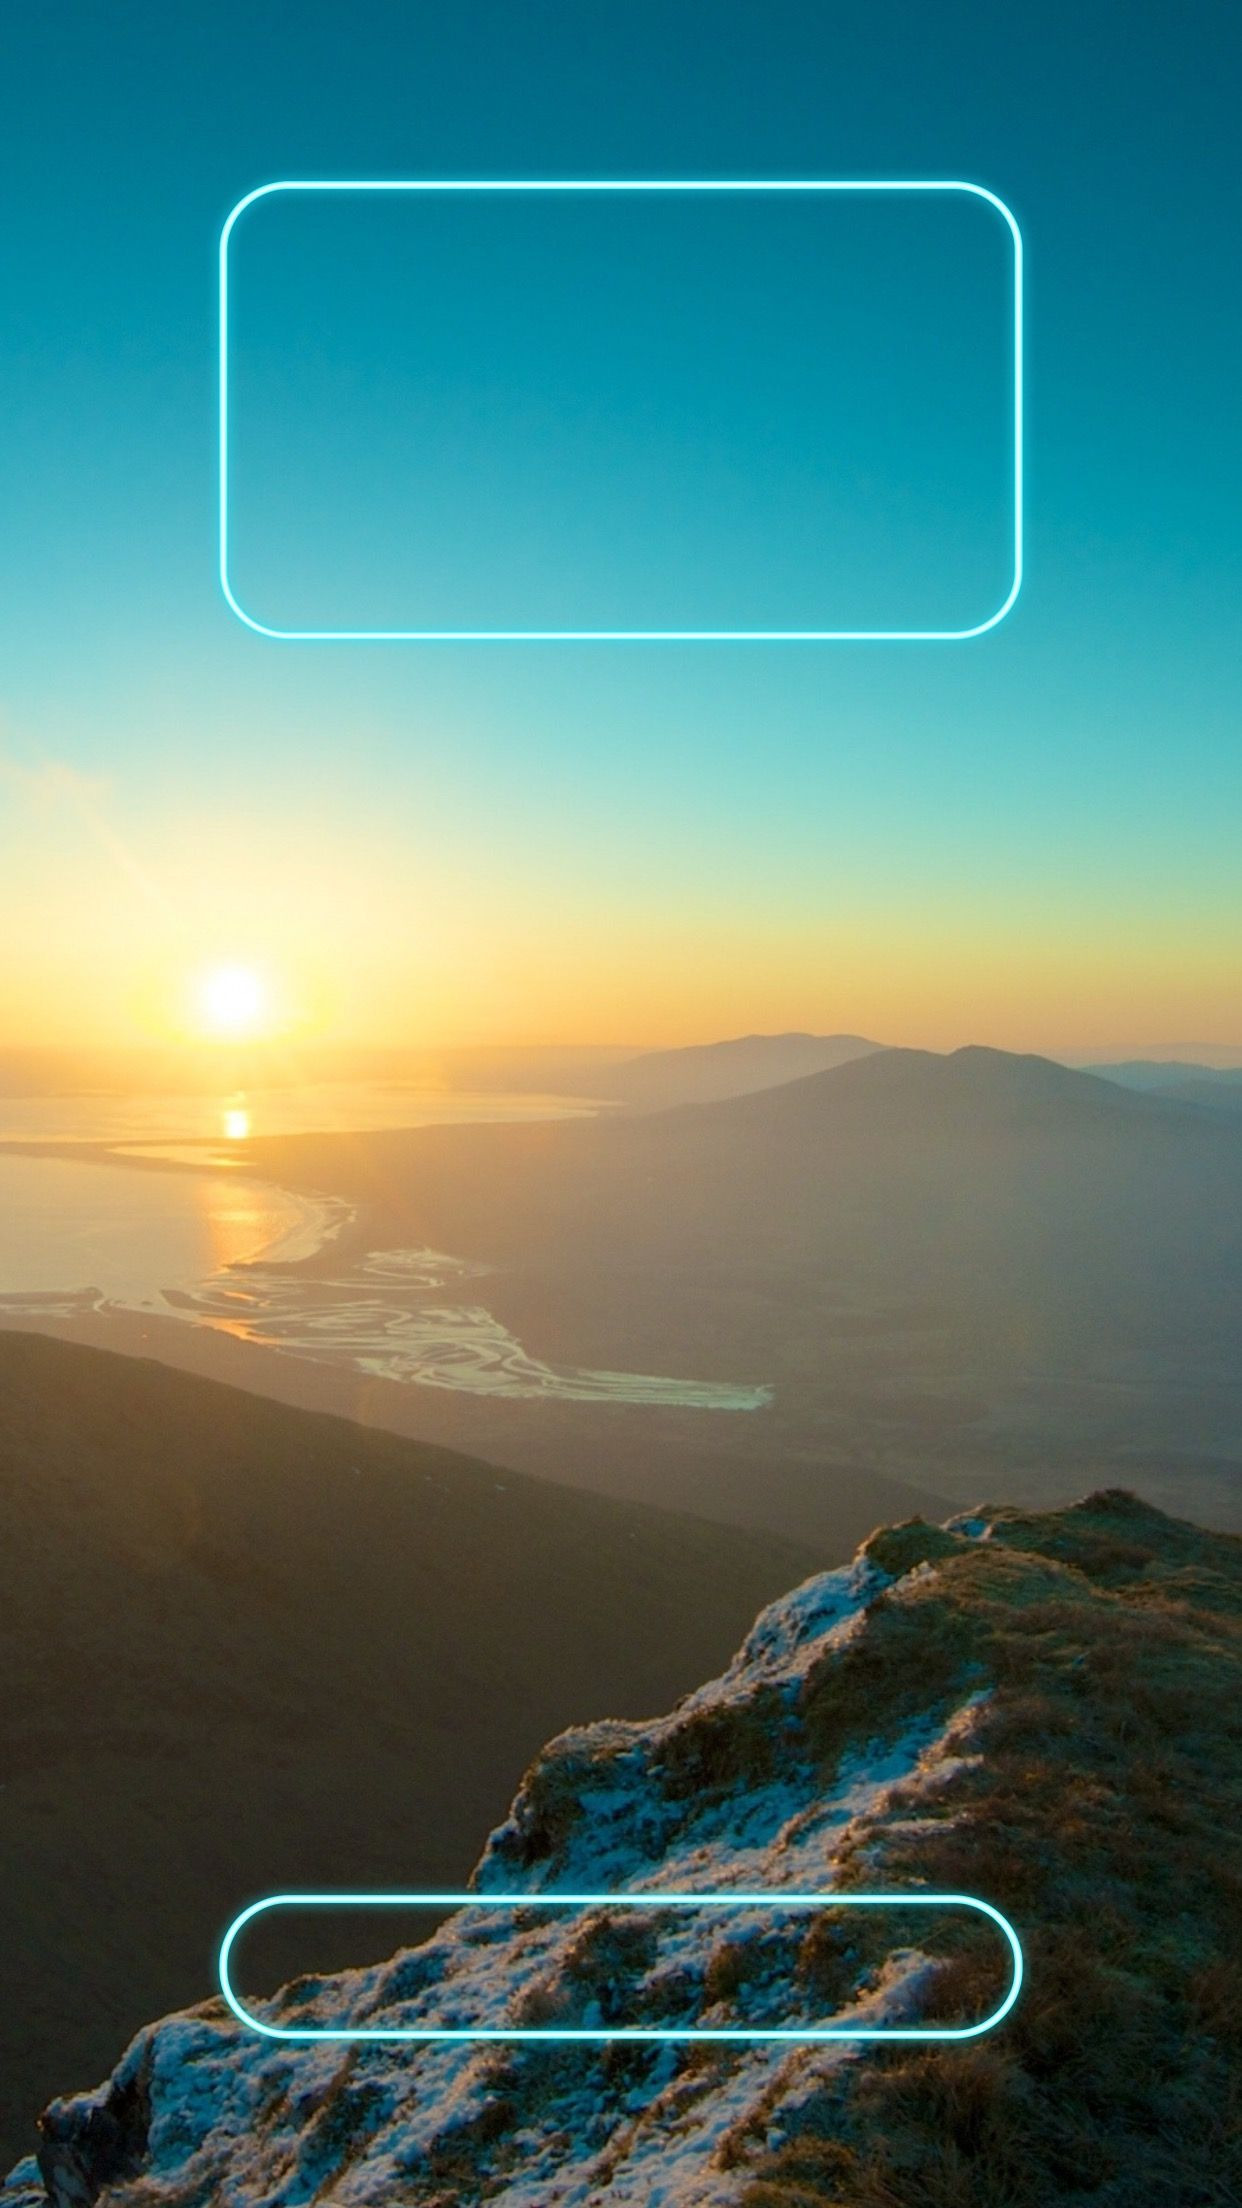 Heres 10 Lockscreens With Nature Views For The IPhone 6 Plus Pantalla Para Iphone